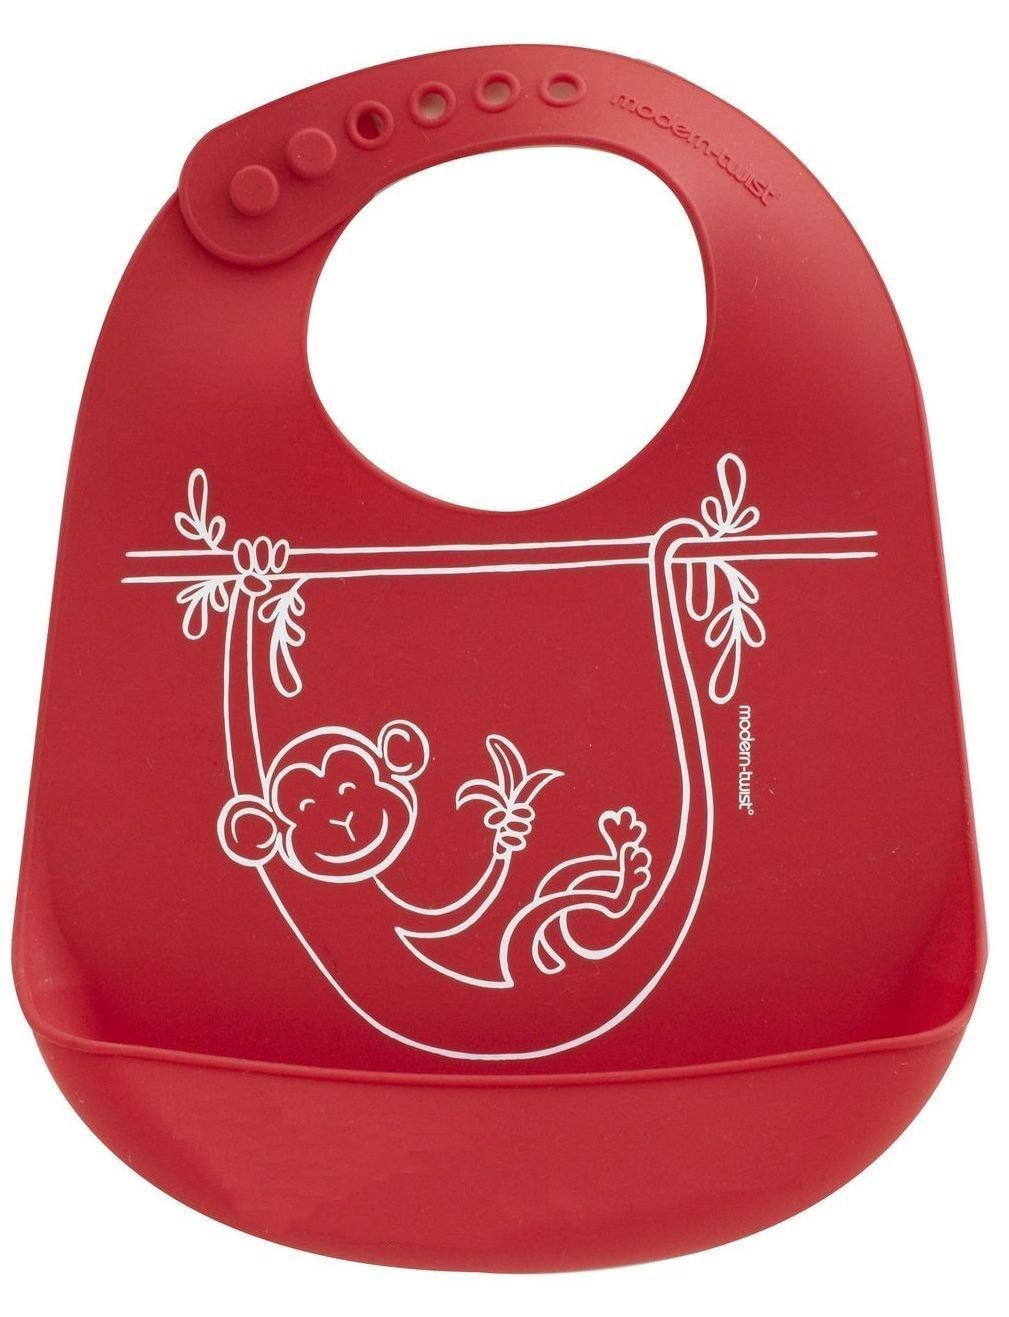 modern-twist Waterproof Silicone Bucket Baby Bib with Adjustable Strap, plastic free, wipe clean and dishwasher safe, Red by modern-twist (Image #2)